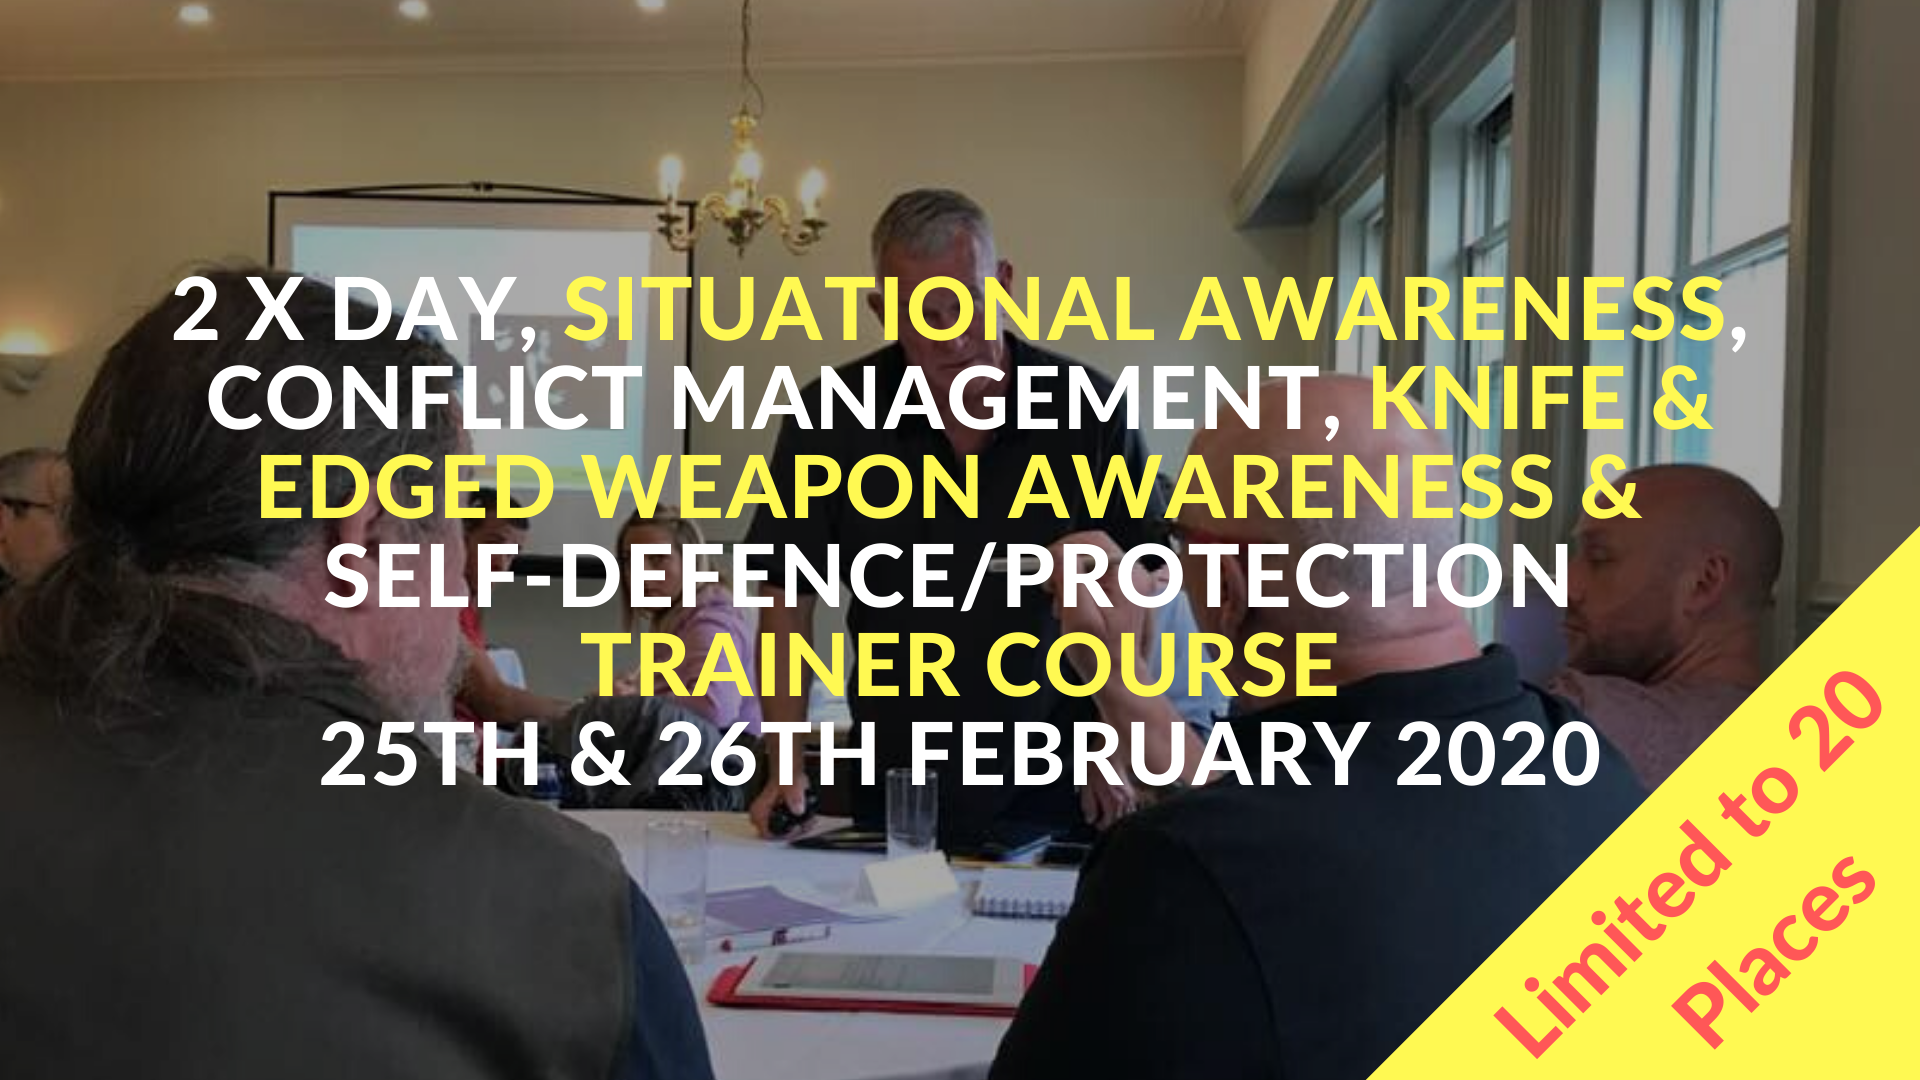 2 x Day, Situational Awareness, Conflict Management, Knife & Edged Weapon Awareness & Self-Defnece_Protection Trainer Course 29th & 30th October 2020